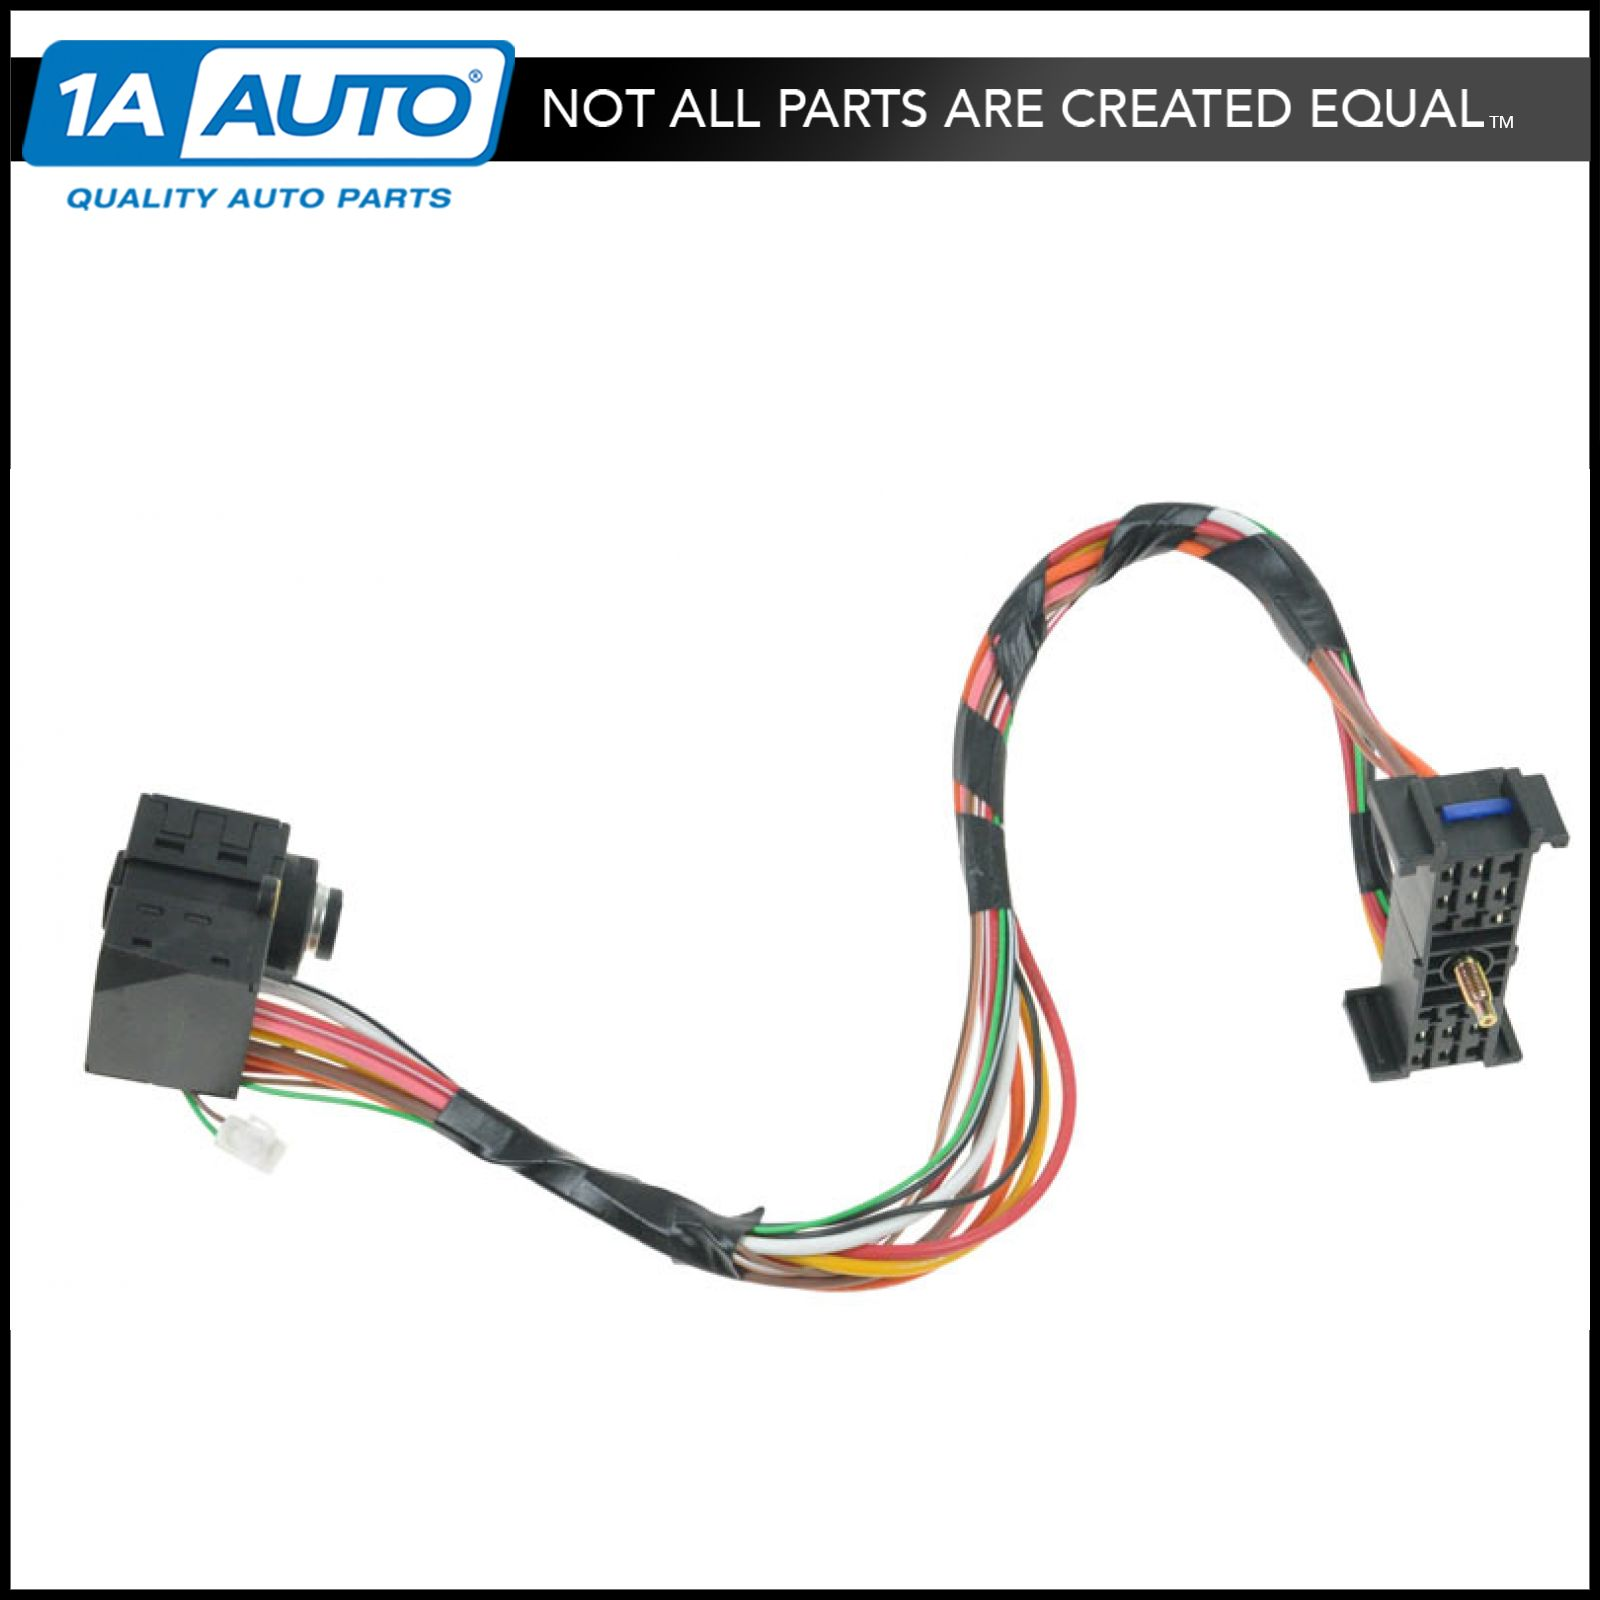 All Chevy 95 chevy 1500 ignition switch : Ignition Starter Switch for 95-96 Chevy GMC Astro Blazer S10 S-15 ...